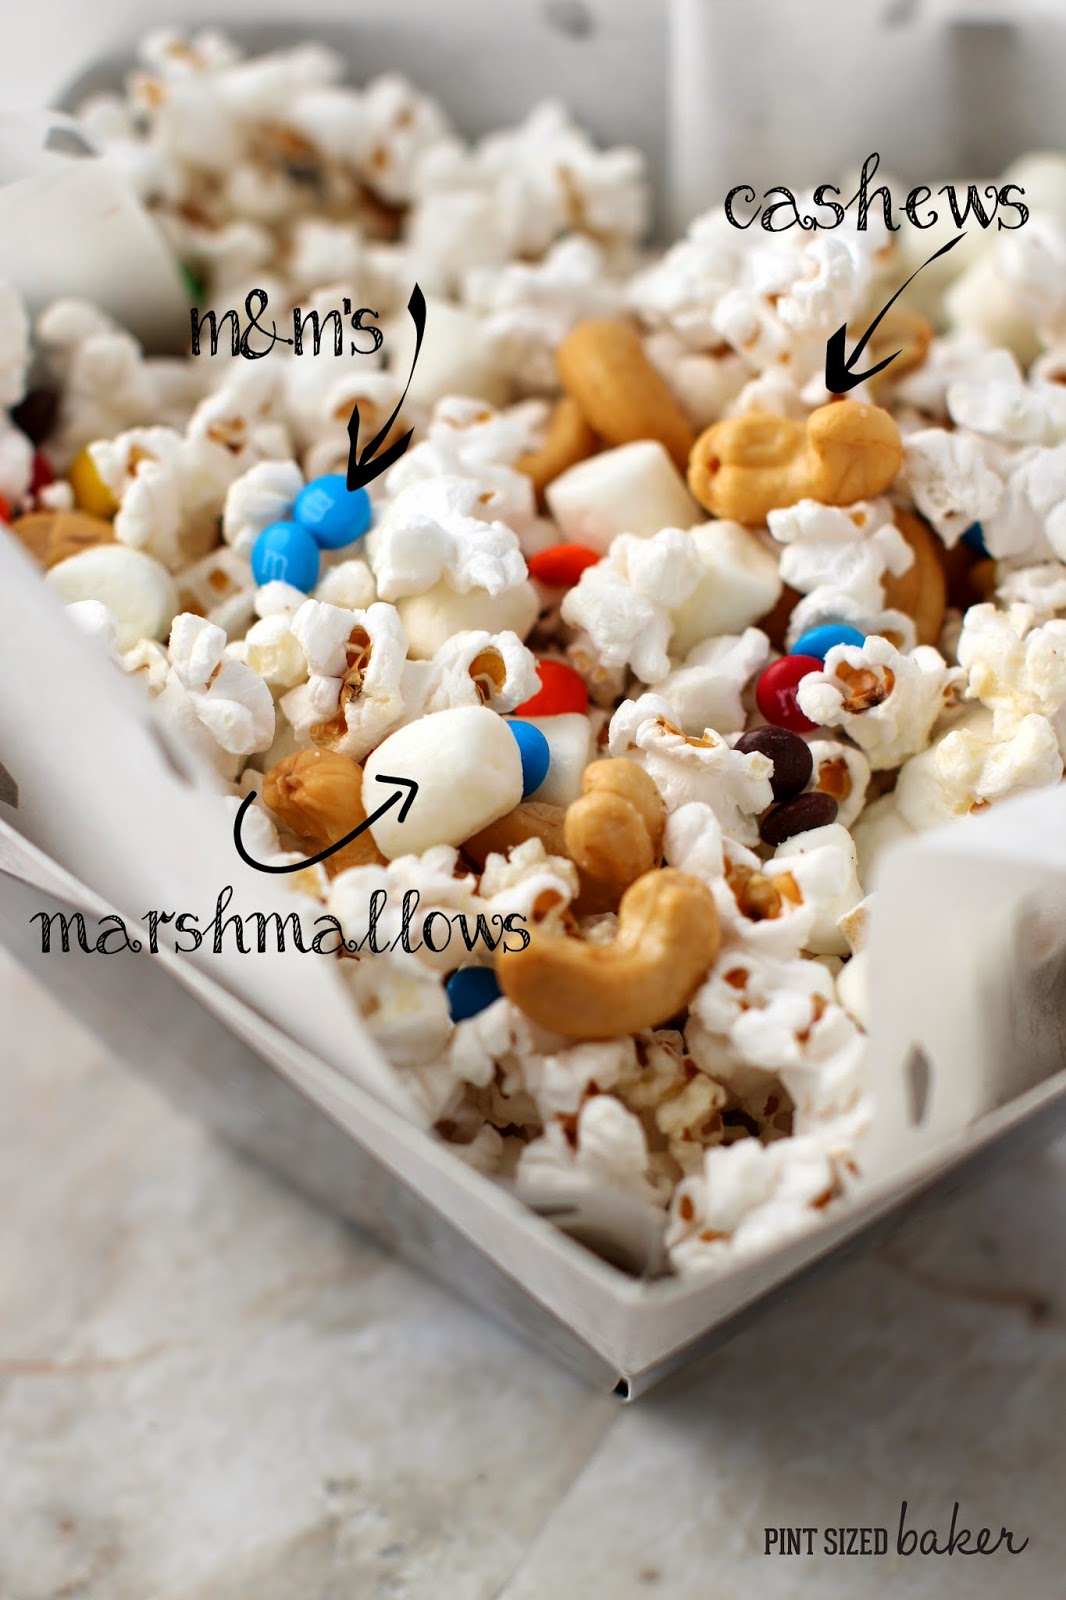 Popcorn mixed with Salty Cashews, Sweet mini marshmallows and M and M's and tossed with butter. A quick and easy snack!